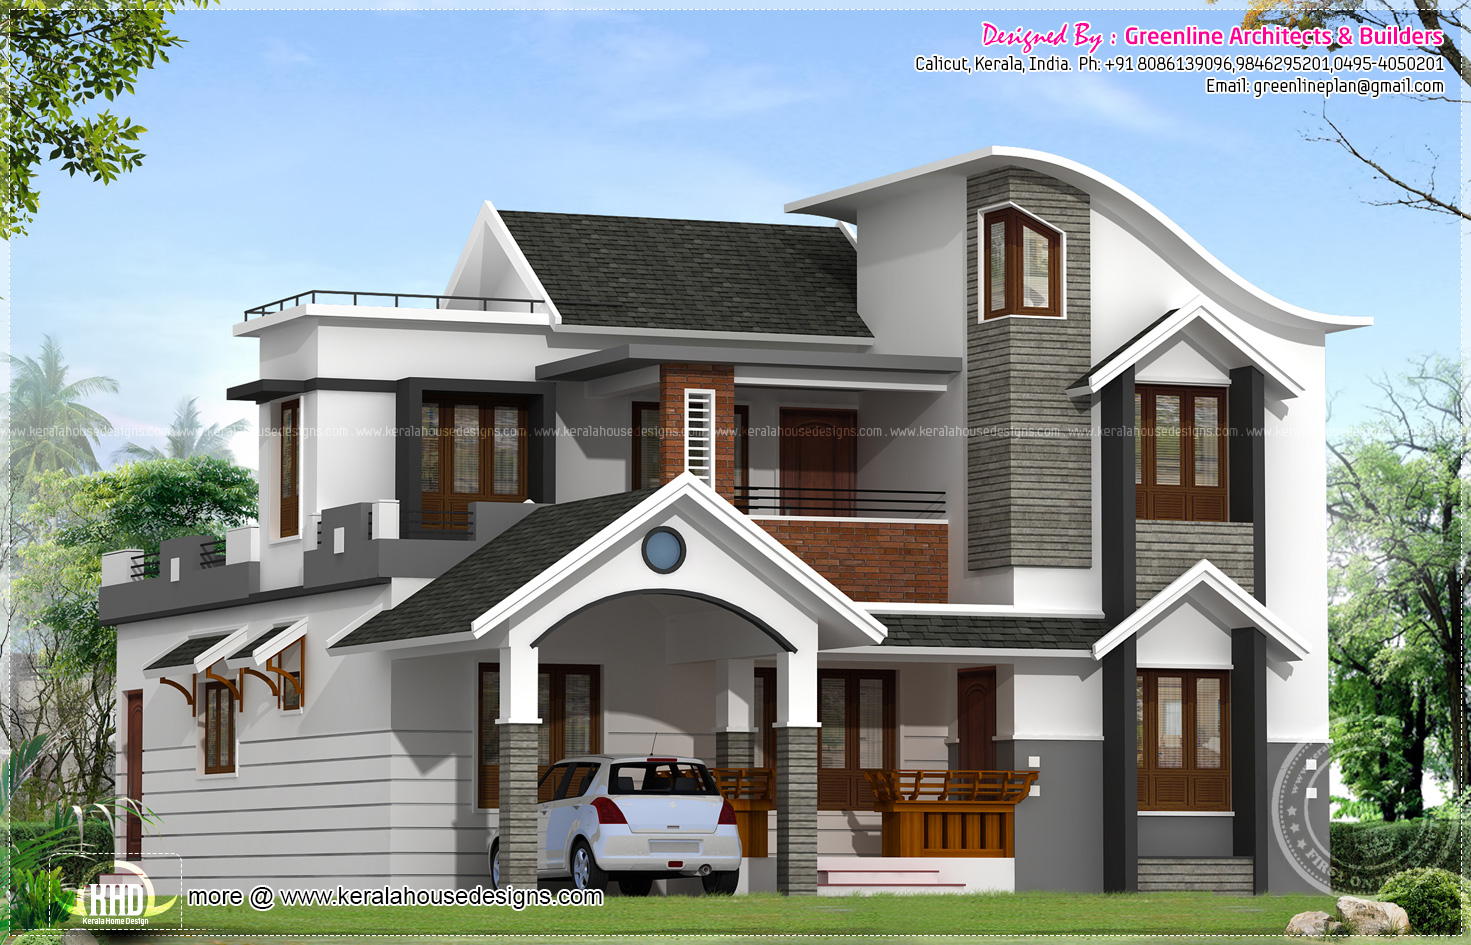 Modern house architecture in kerala kerala home design for Modern green home plans